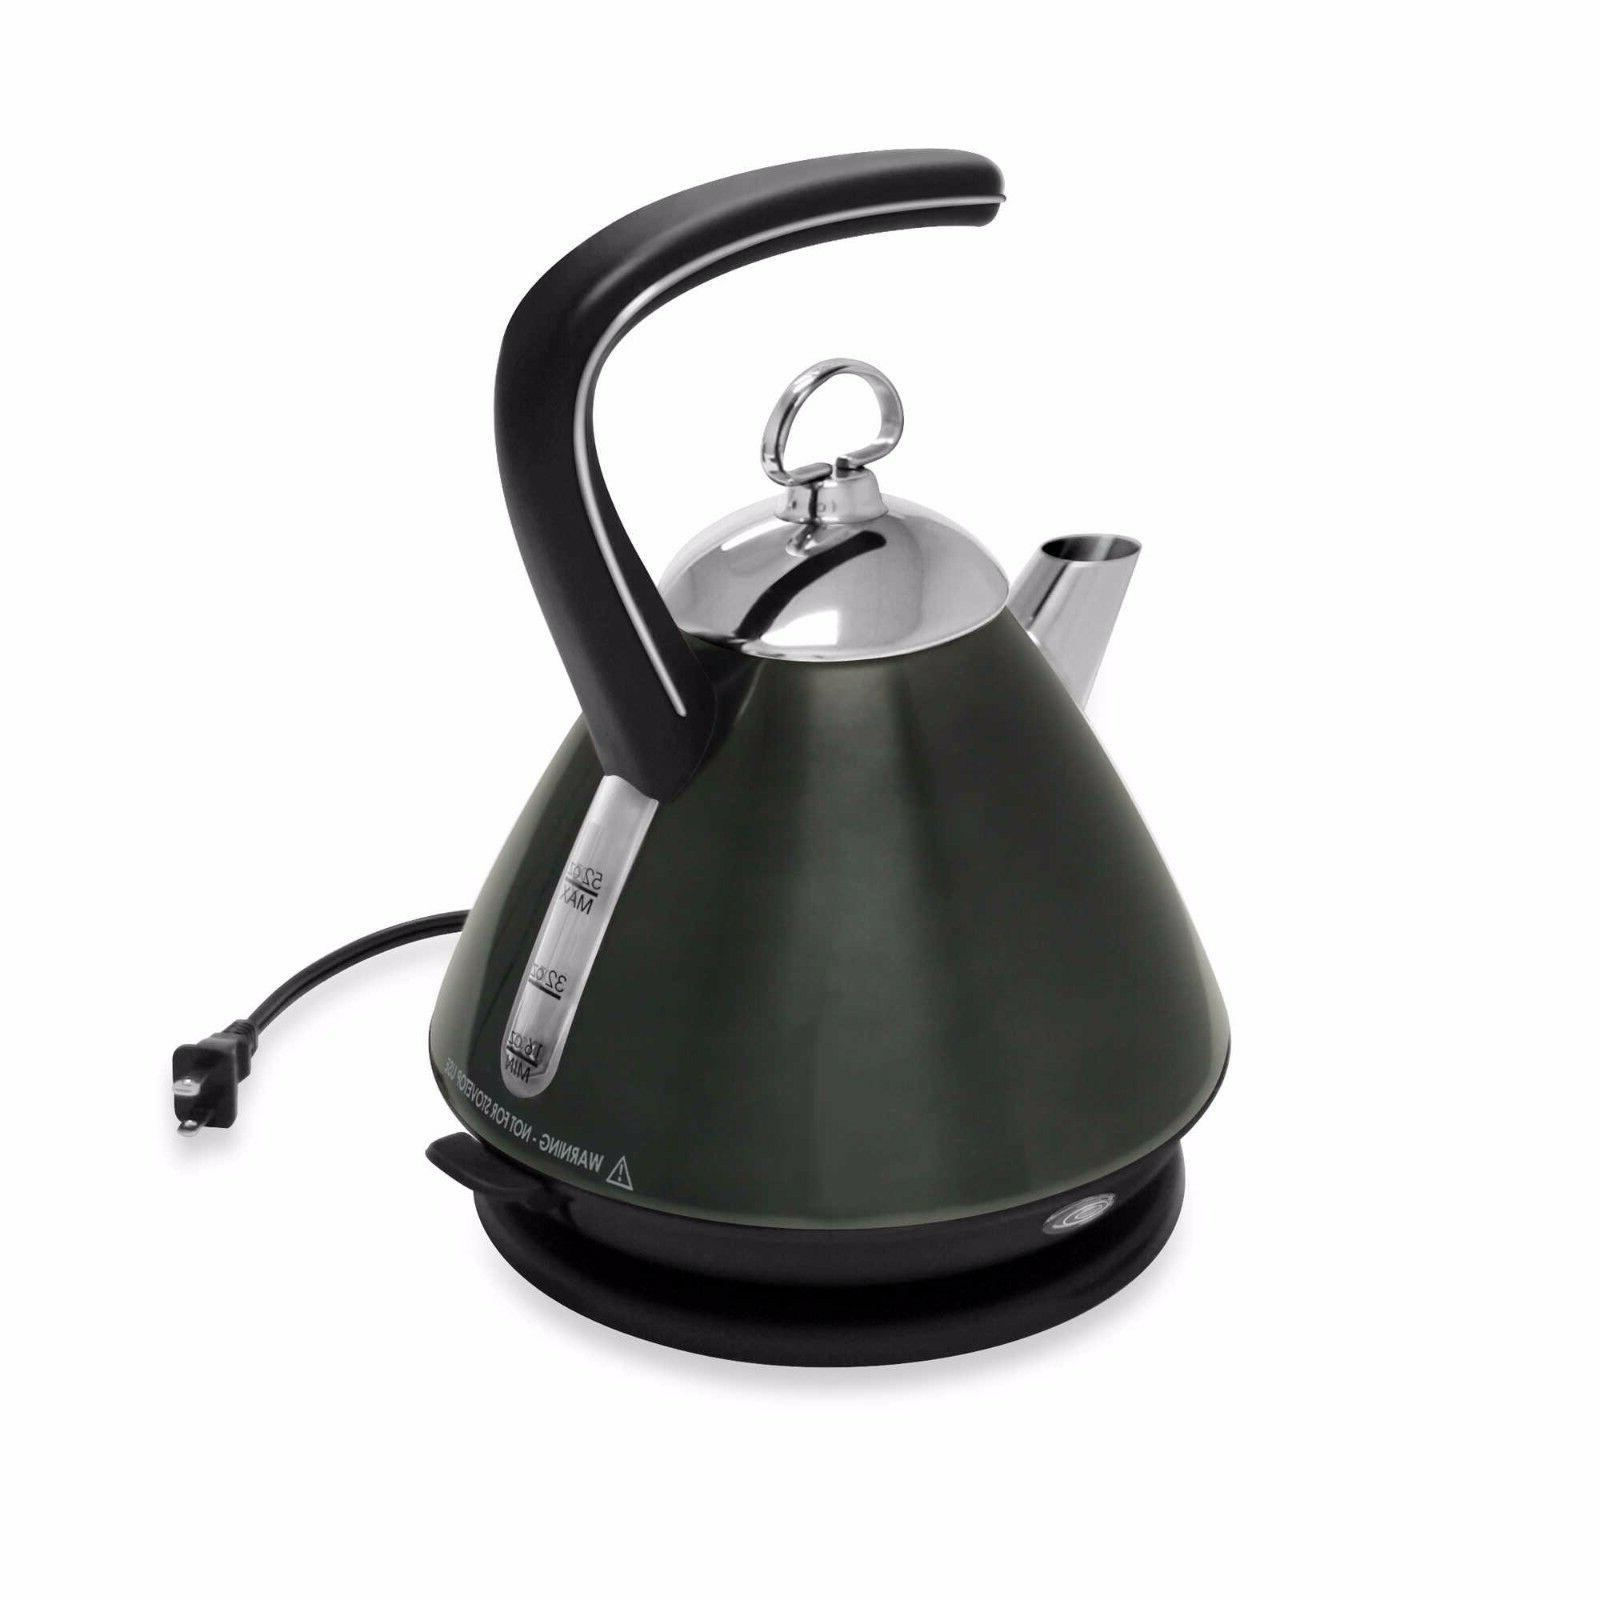 Black 52 Ounce Ekettle Automatic Shut Off Angled Spout Elect